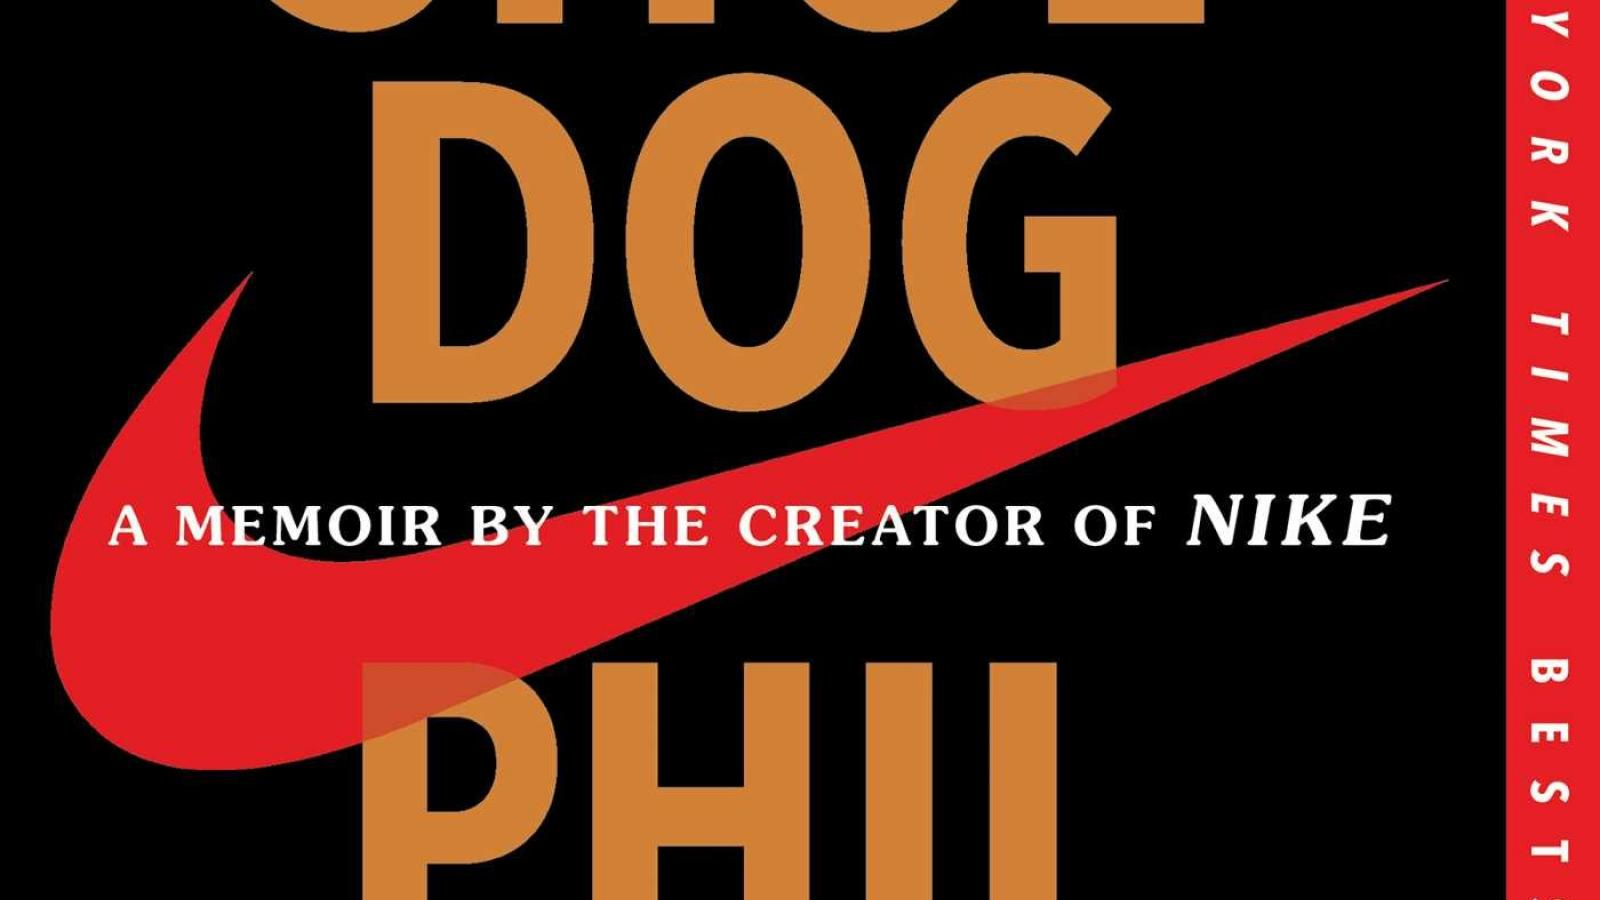 Inspiring Books: Shoe Dog: A Memoir by the Creator of Nike